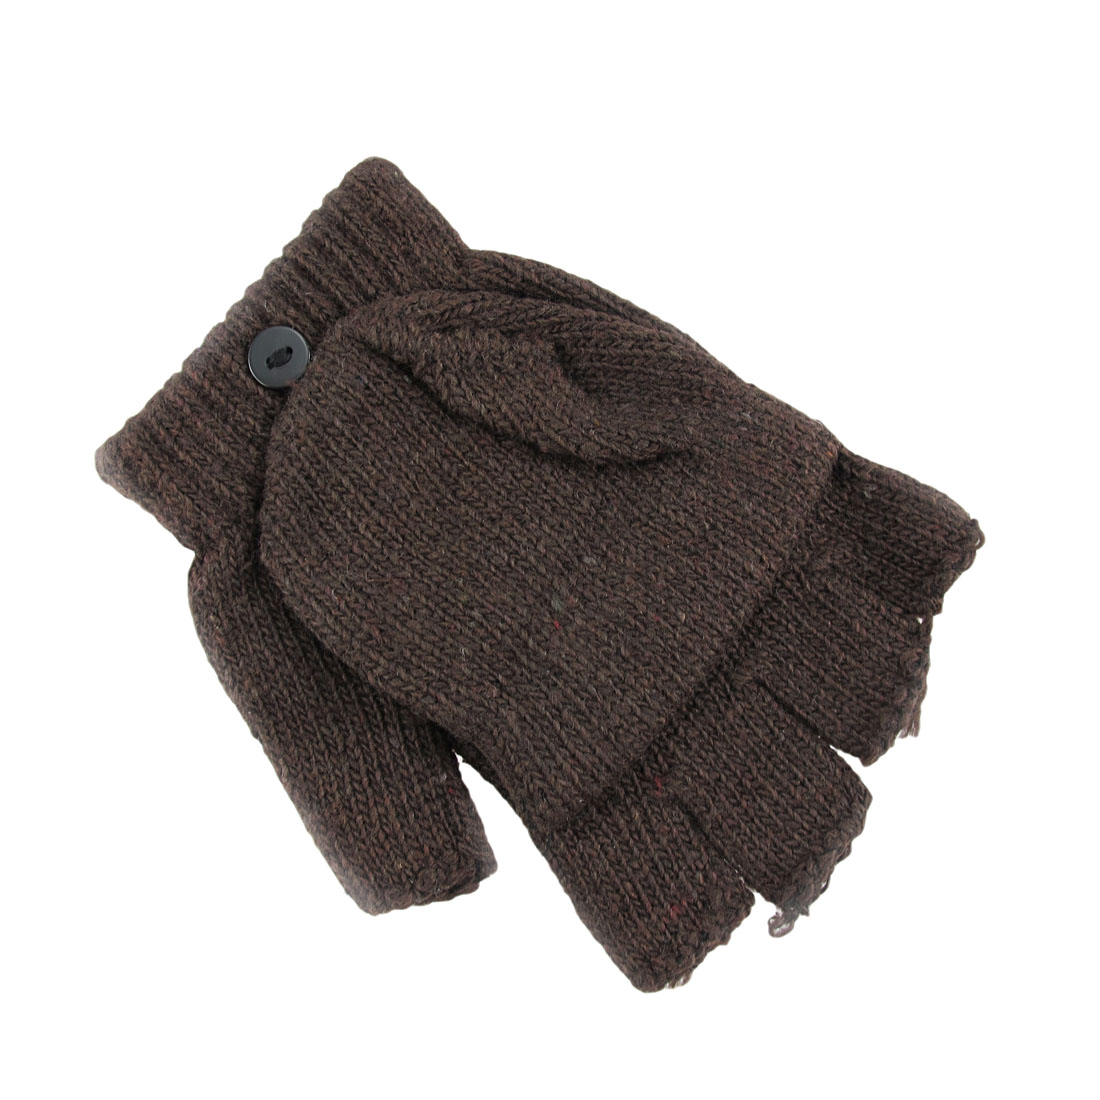 Knitting Pattern For Texting Mittens : Knit Convertible Texting Mittens Gloves Smoker eBay